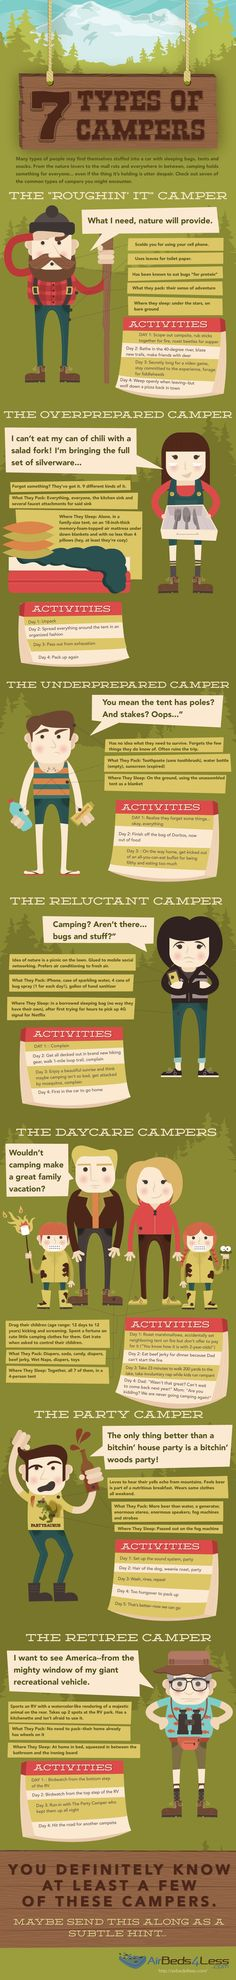 "INFOGRAPHIC: 7 TYPES OF CAMPERS Everyone has a different experience when camping in the great outdoors. Take a look at the 7 Types of Campers and see where you fall. Are you ""The Underprepared Camp Camping And Hiking, Camping Glamping, Camping Survival, Camping Hacks, Camping Gear, Backpacking, Camping Stuff, Camping Humor, Camping Guide"